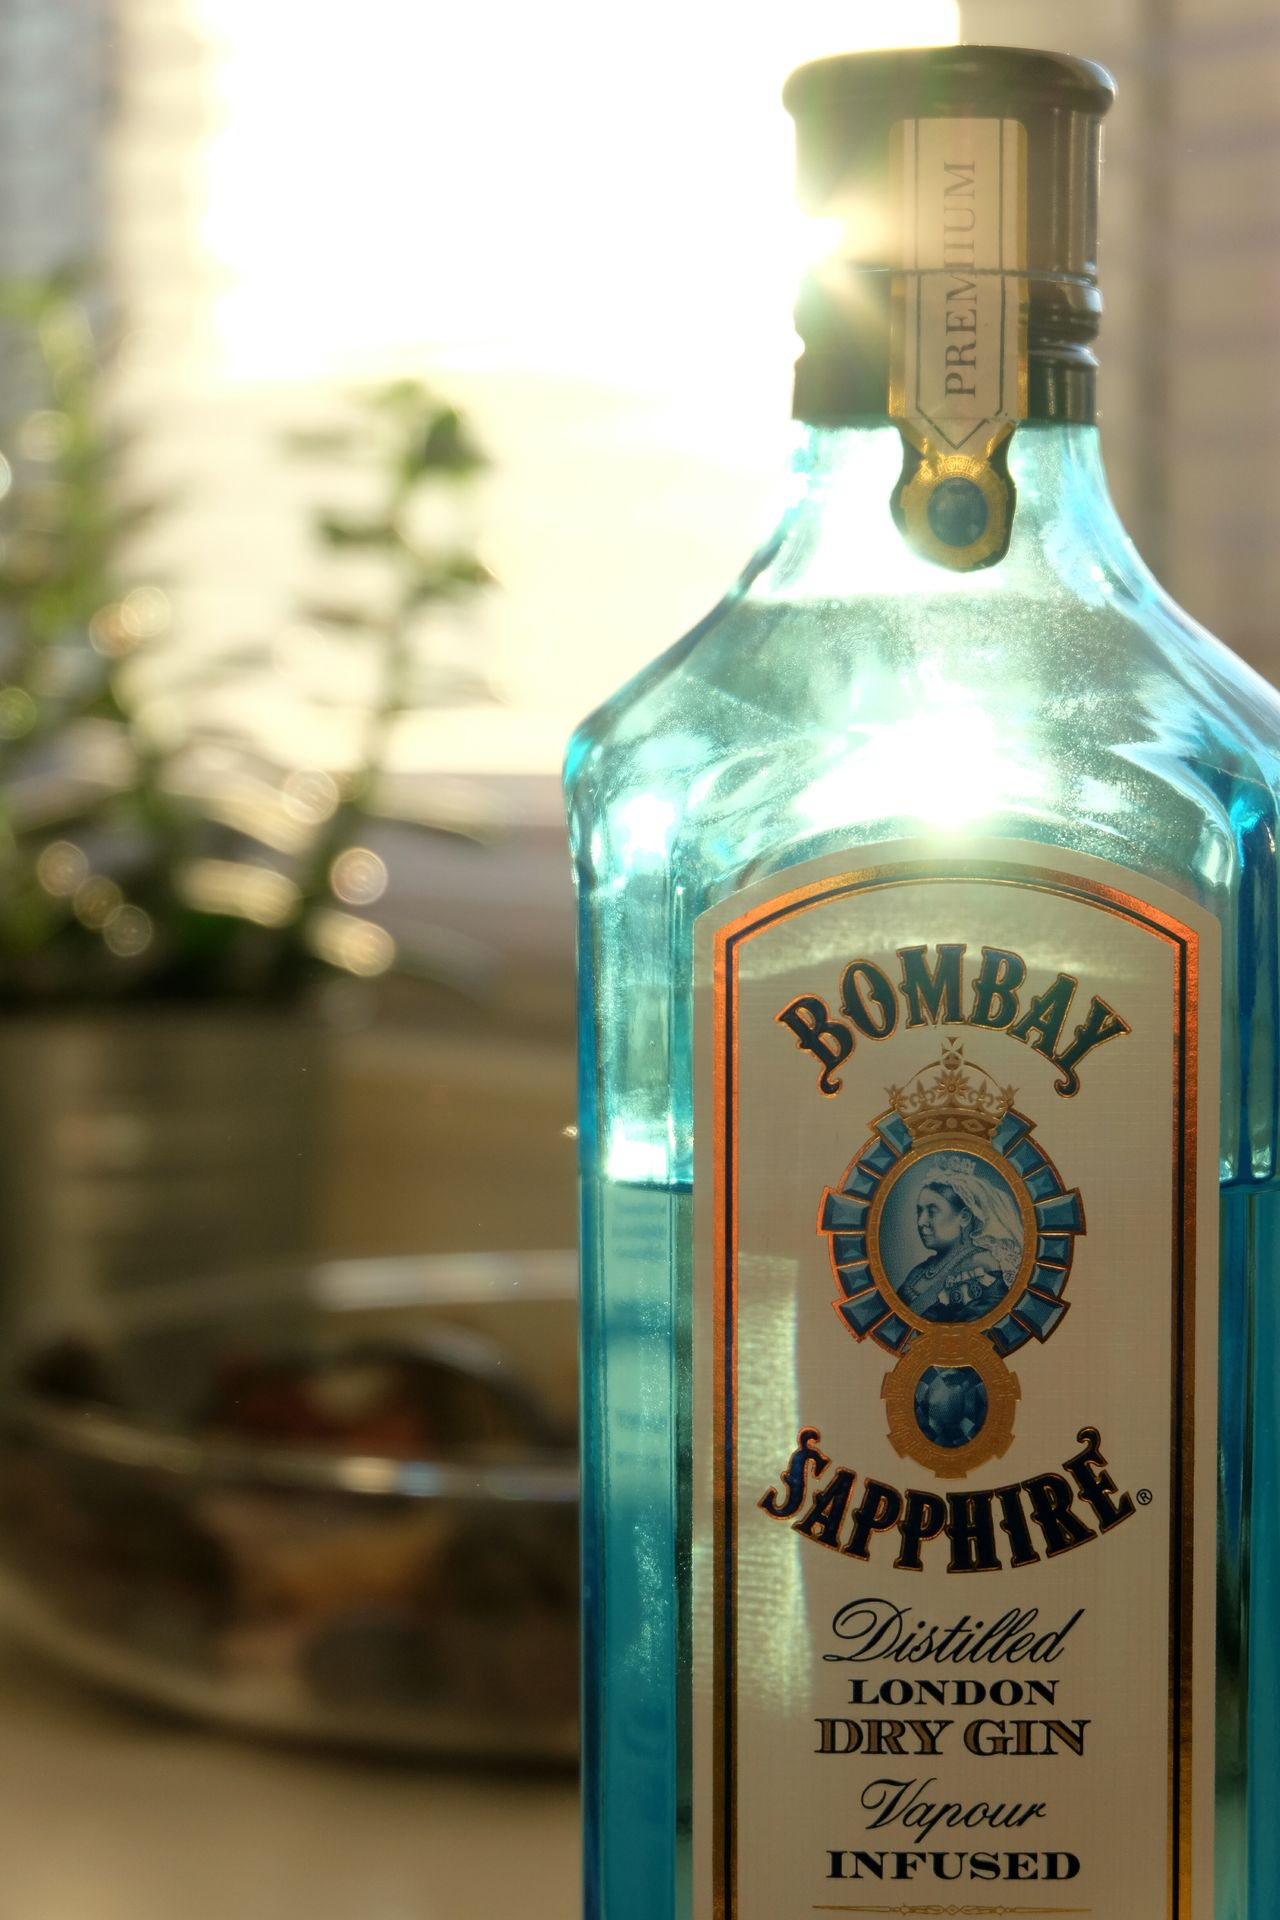 Bombay product photography Close-up No People Product Photography GIN Bombay Sapphire Xt-10 FUJIFILM X-T10